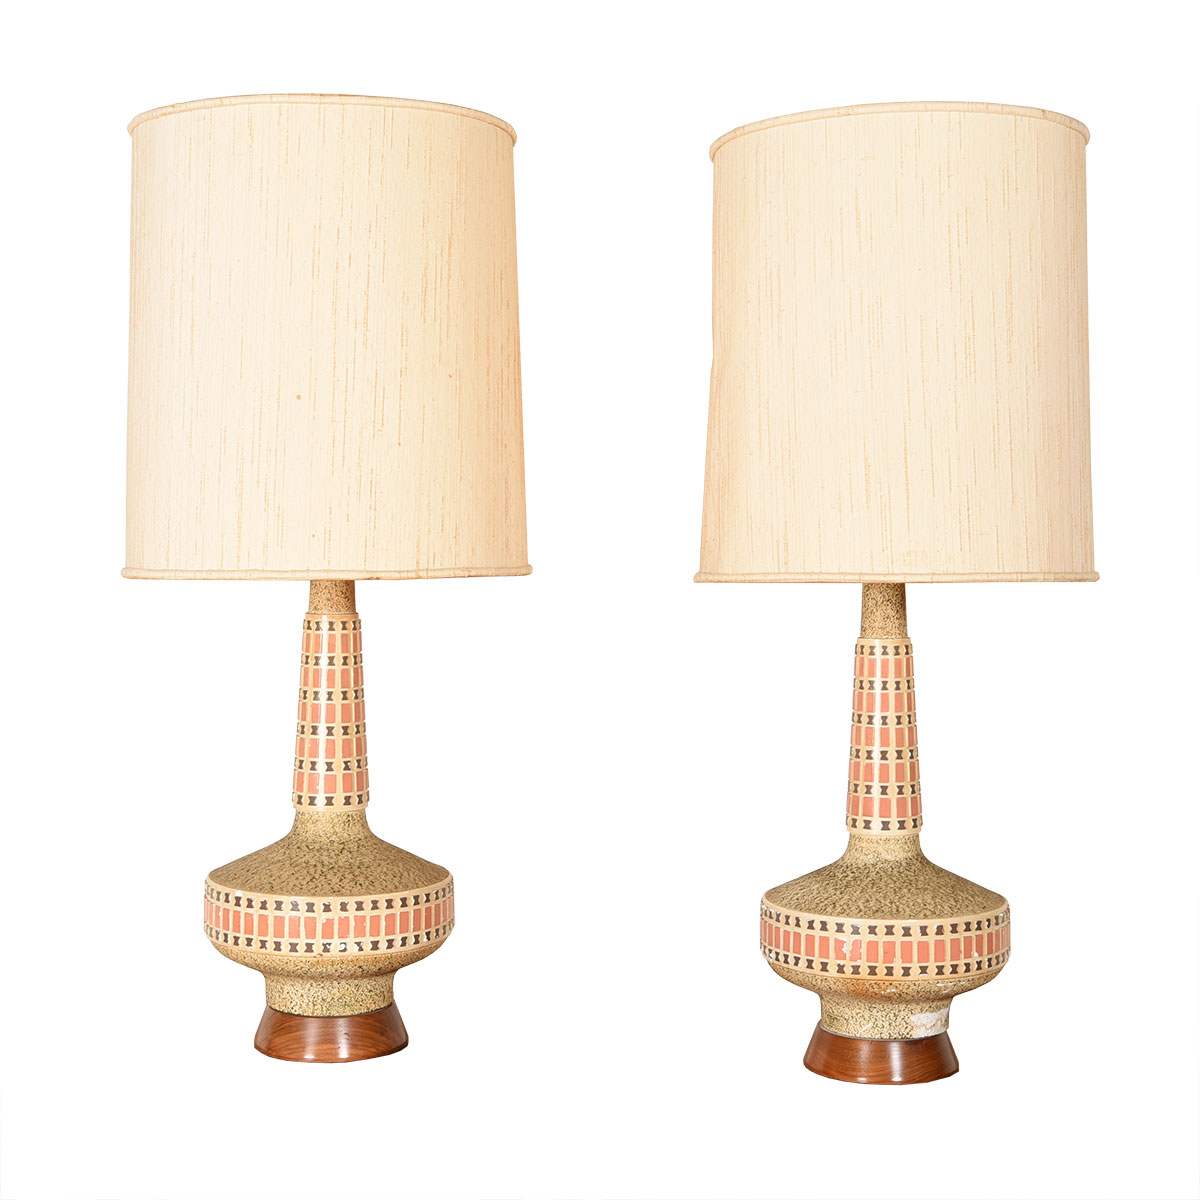 Pair of Tall Ceramic Lamps with Wood Bases